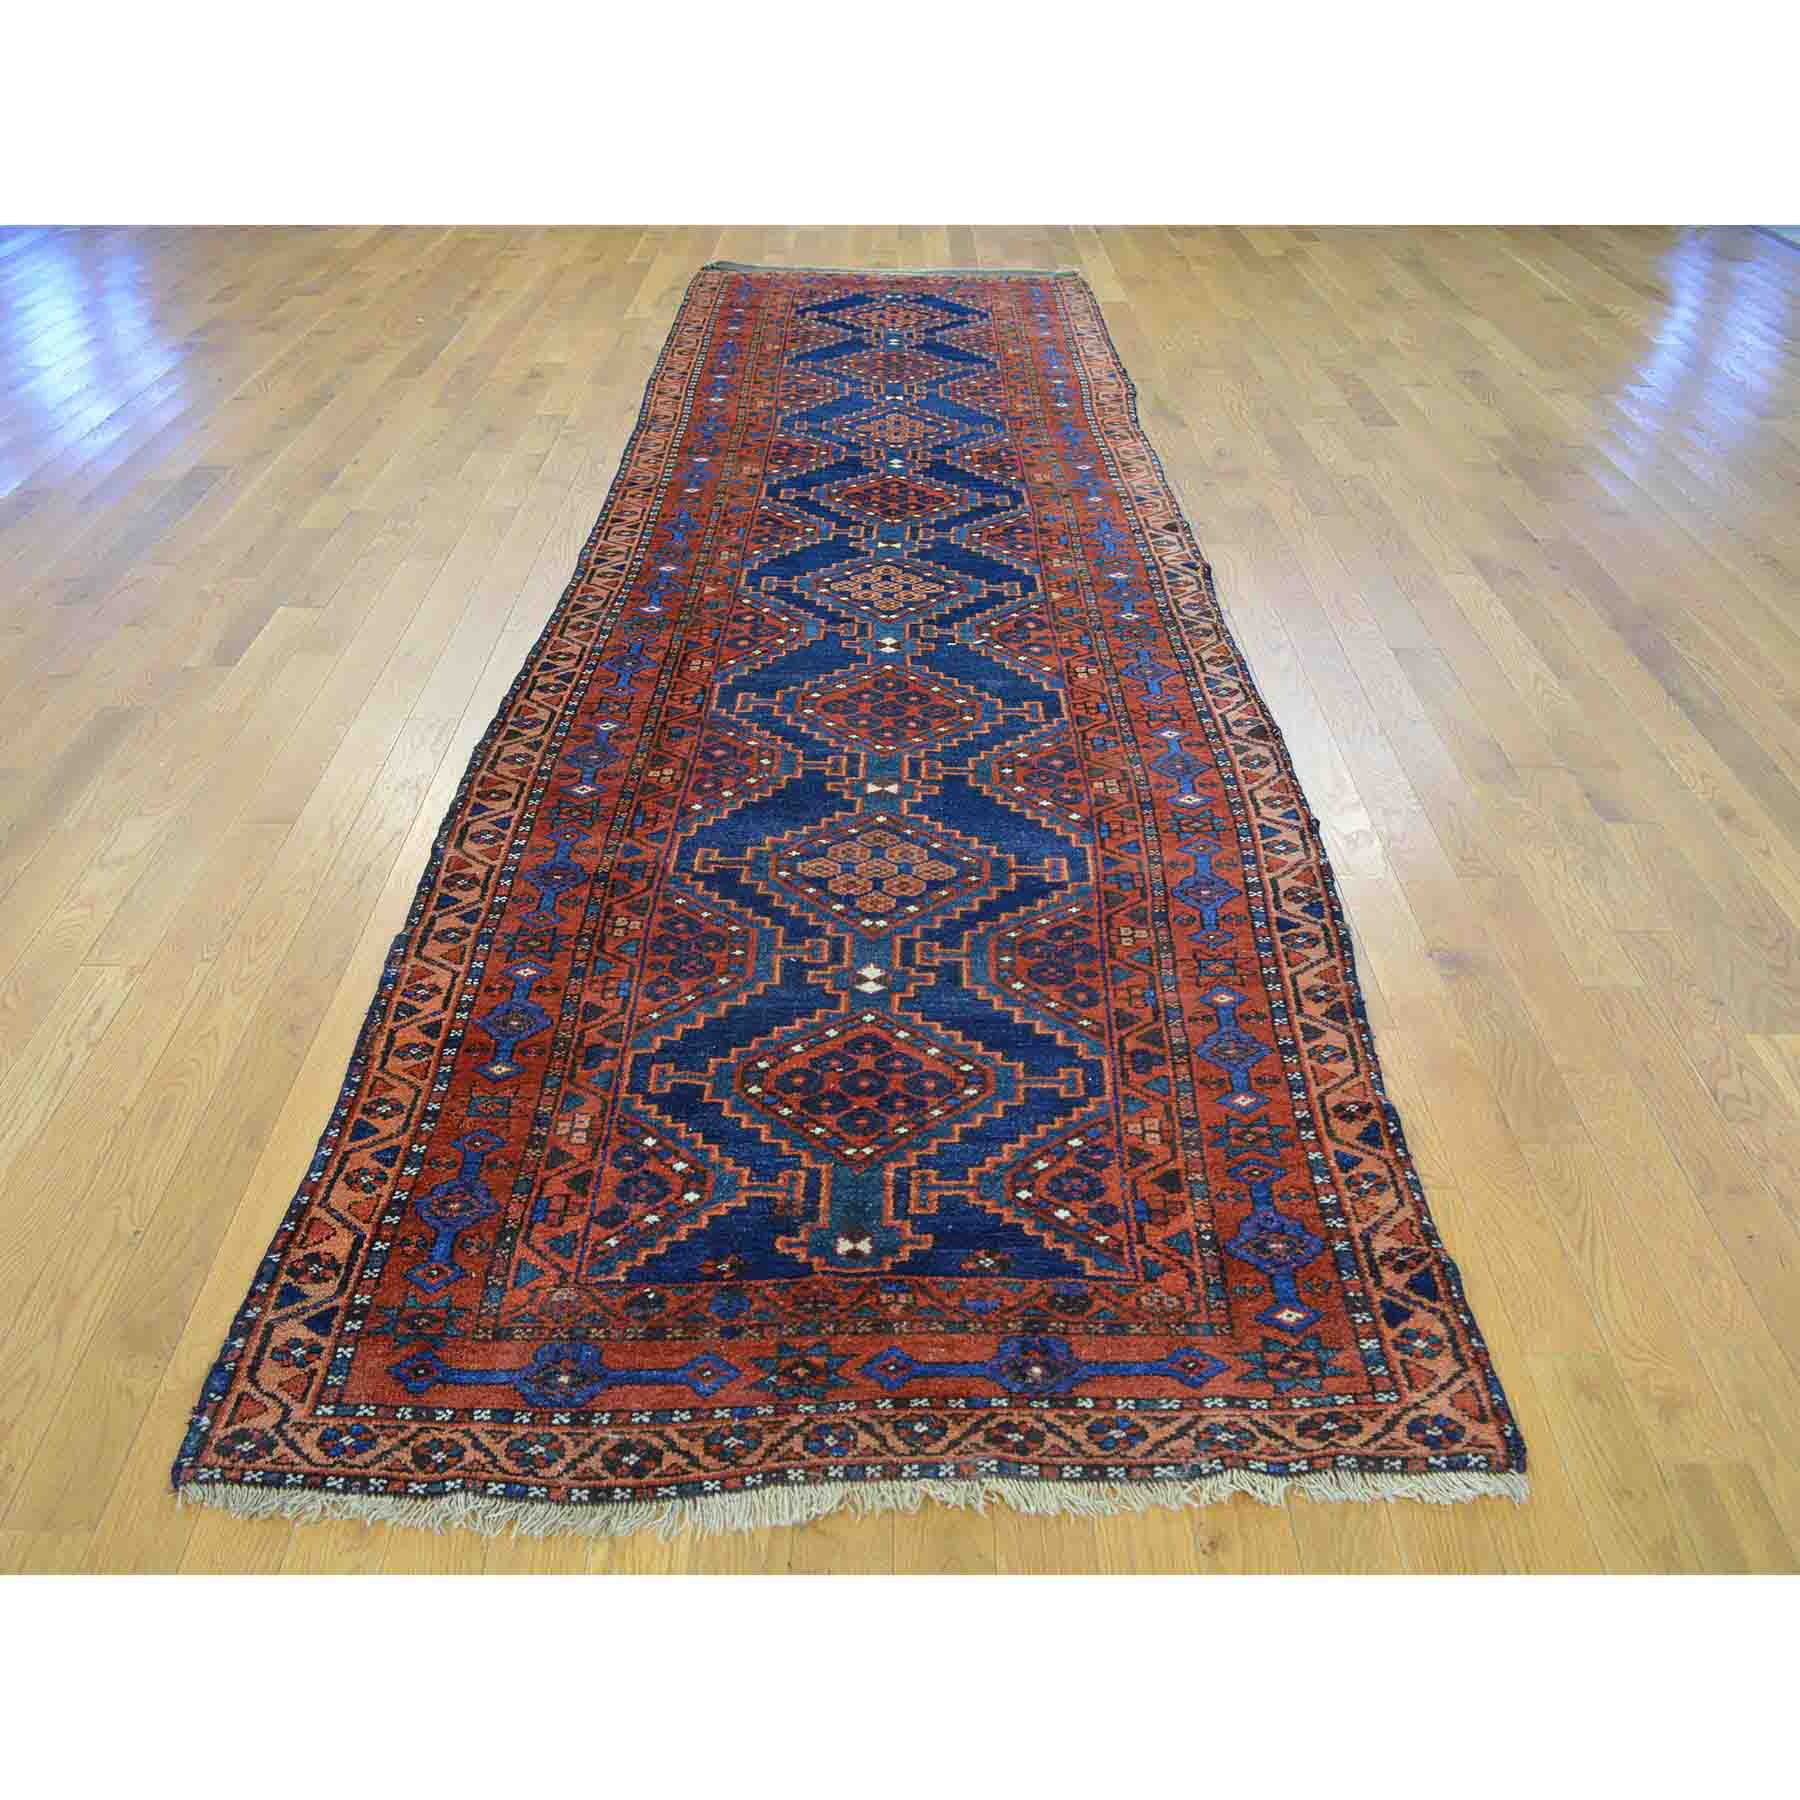 Antique-Hand-Knotted-Rug-135880